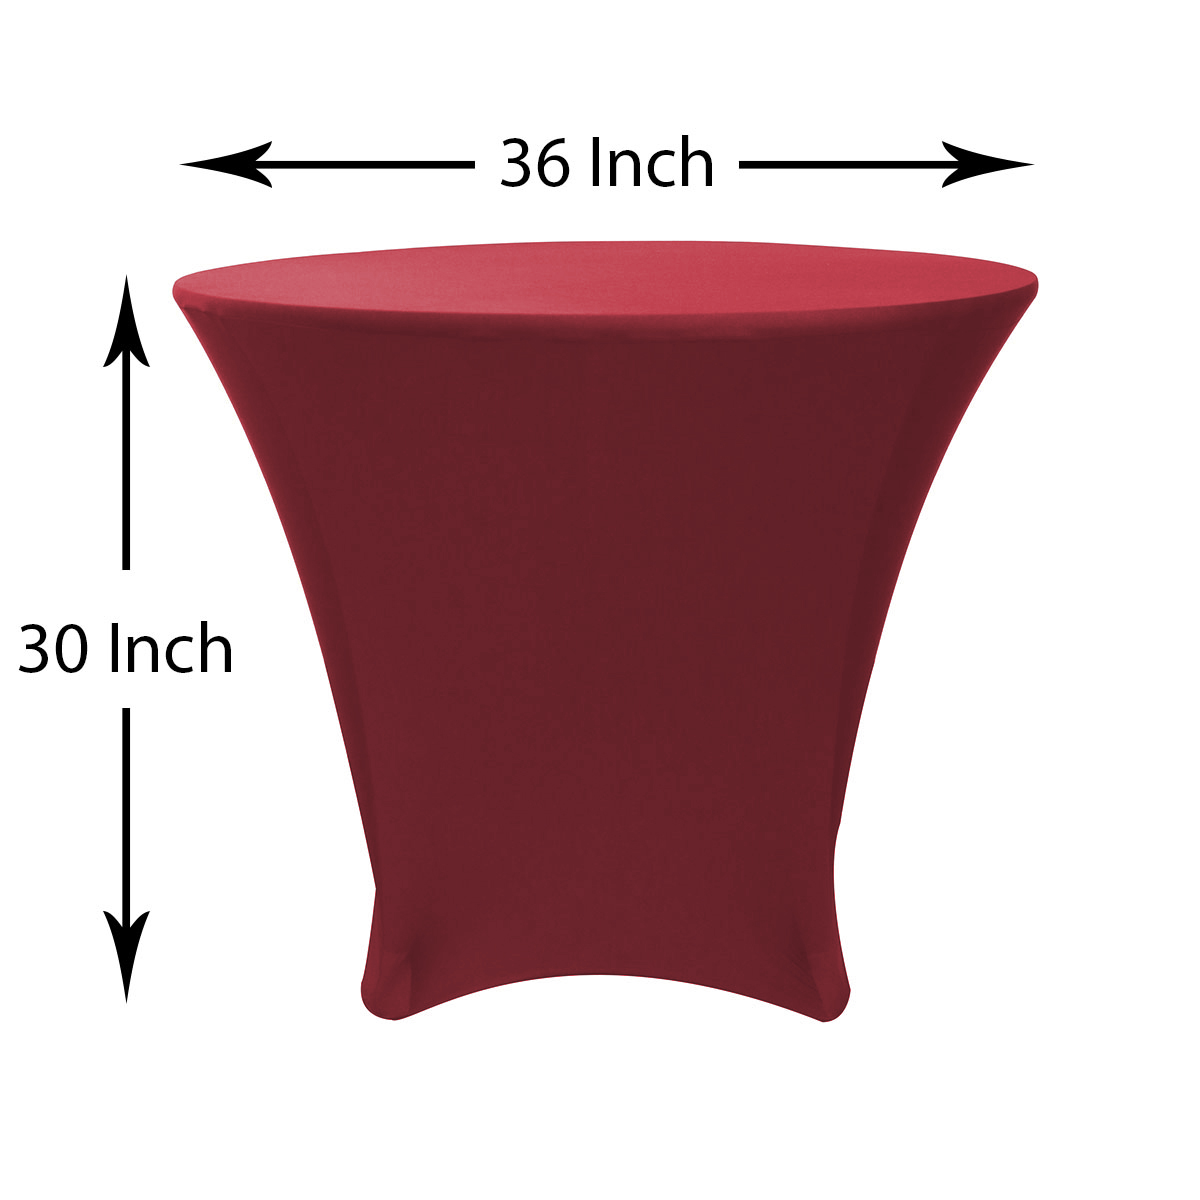 36-30-inch-lowboy-cocktail-spandex-table-covers-burgundy-dimensions.jpg